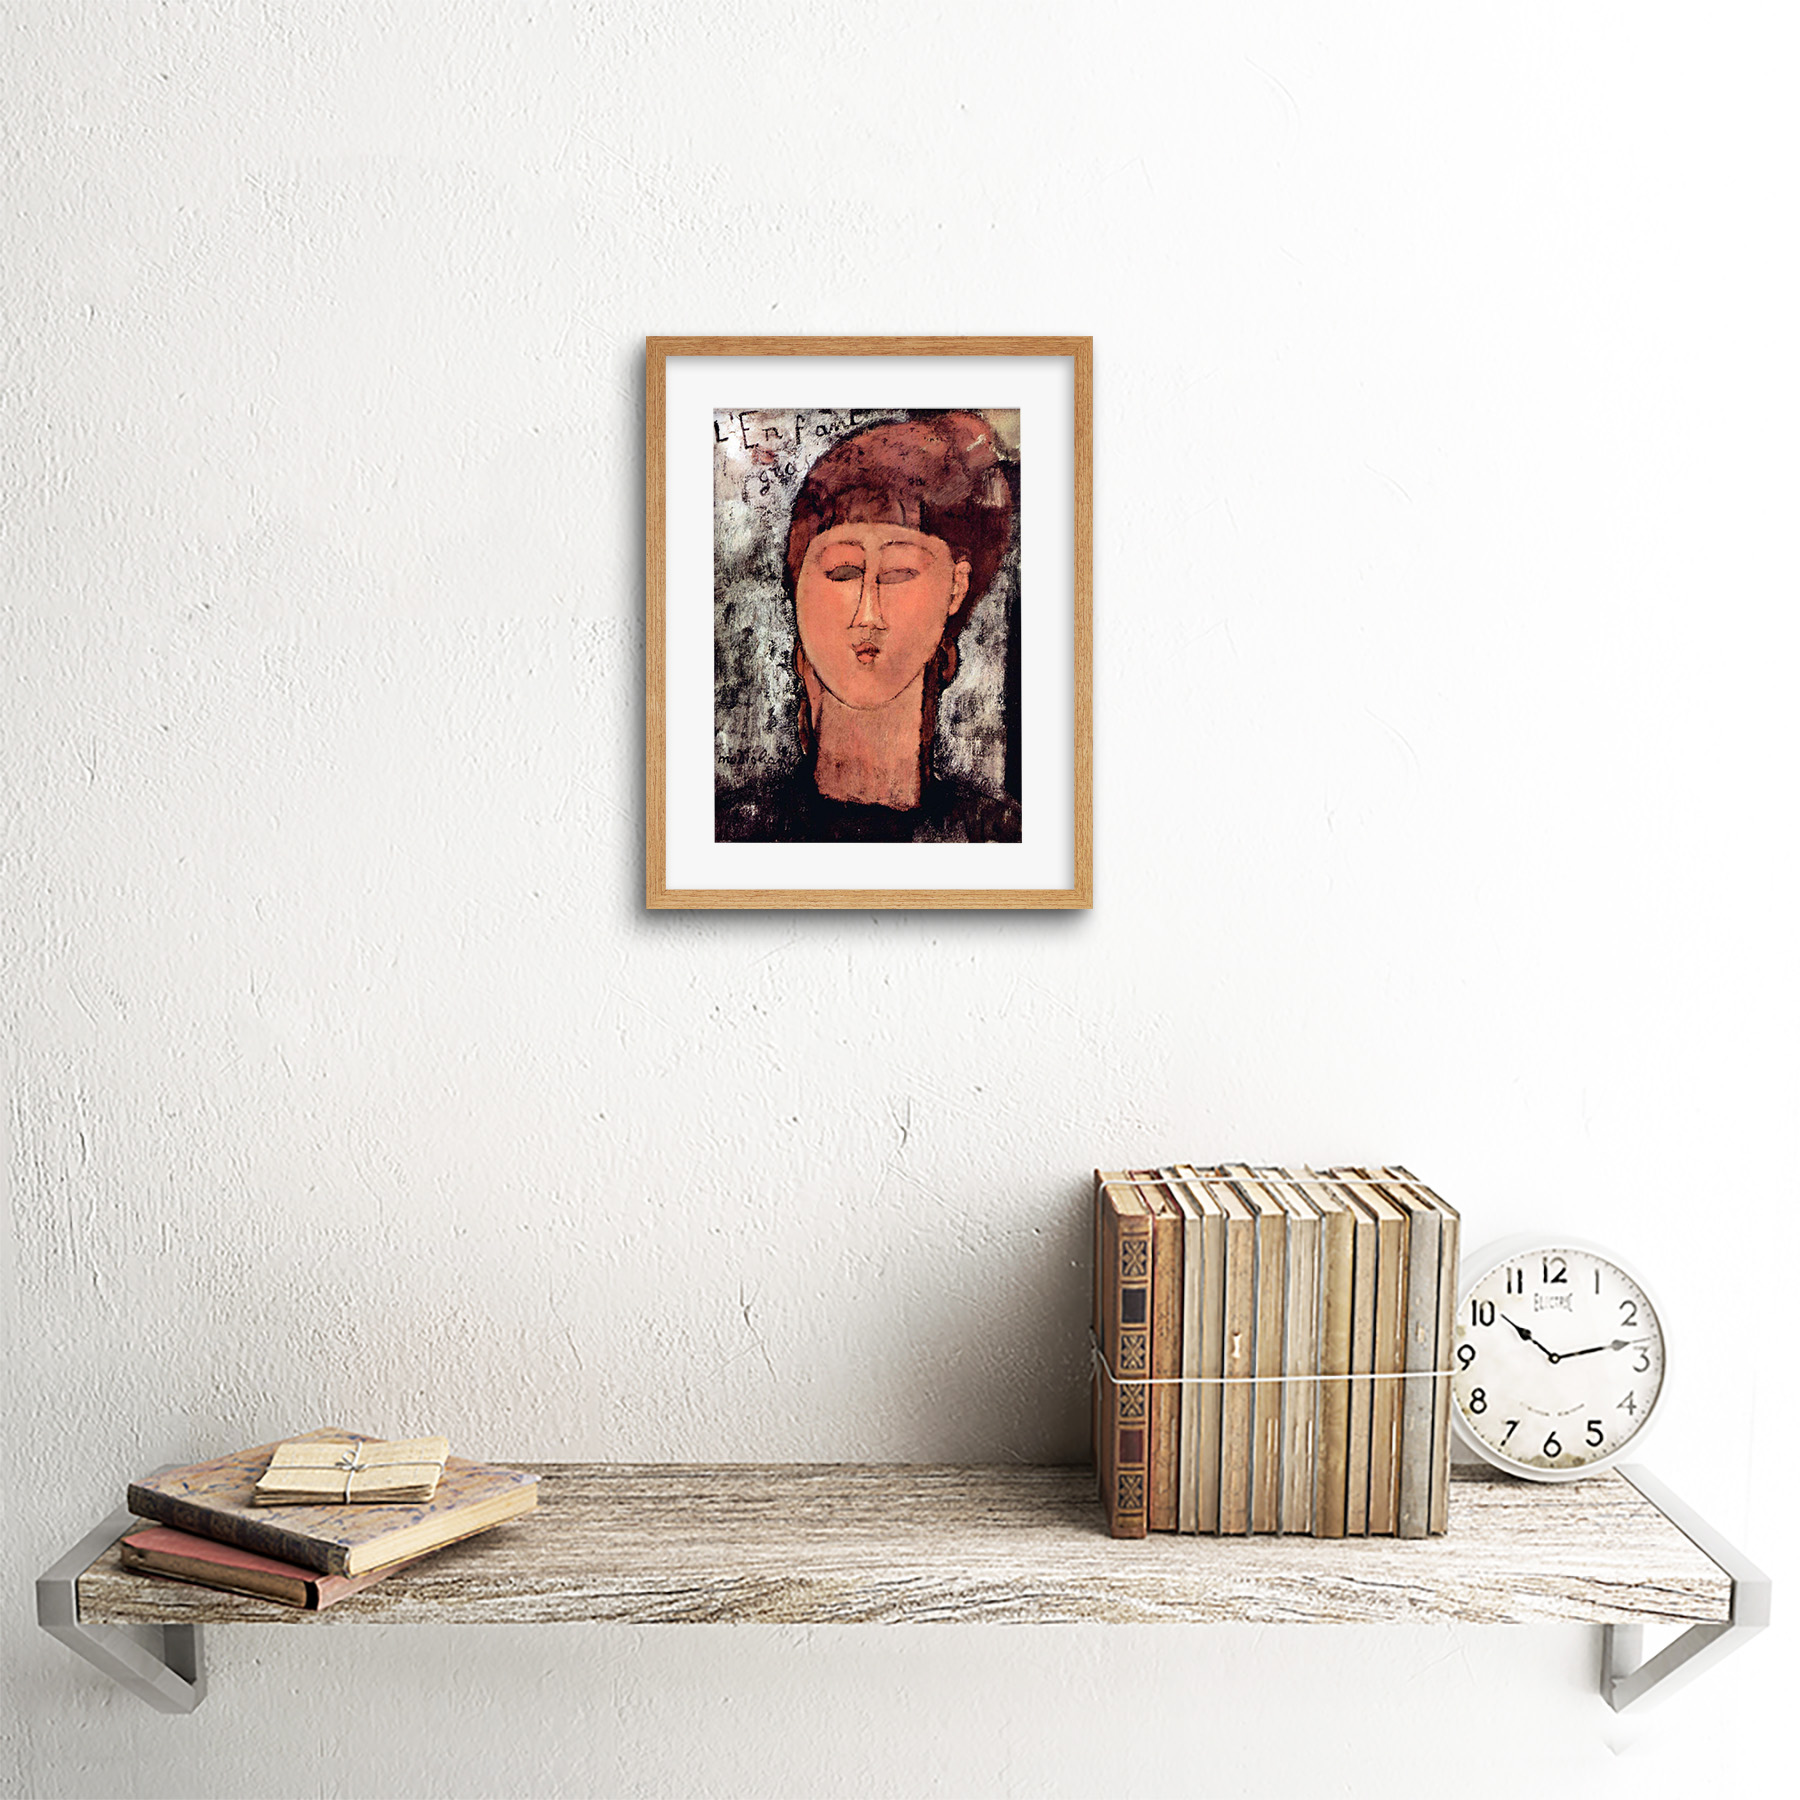 thumbnail 14 - Painting-Modigliani-Enfant-Gras-Old-Master-Framed-Picture-Art-Print-9x7-Inch